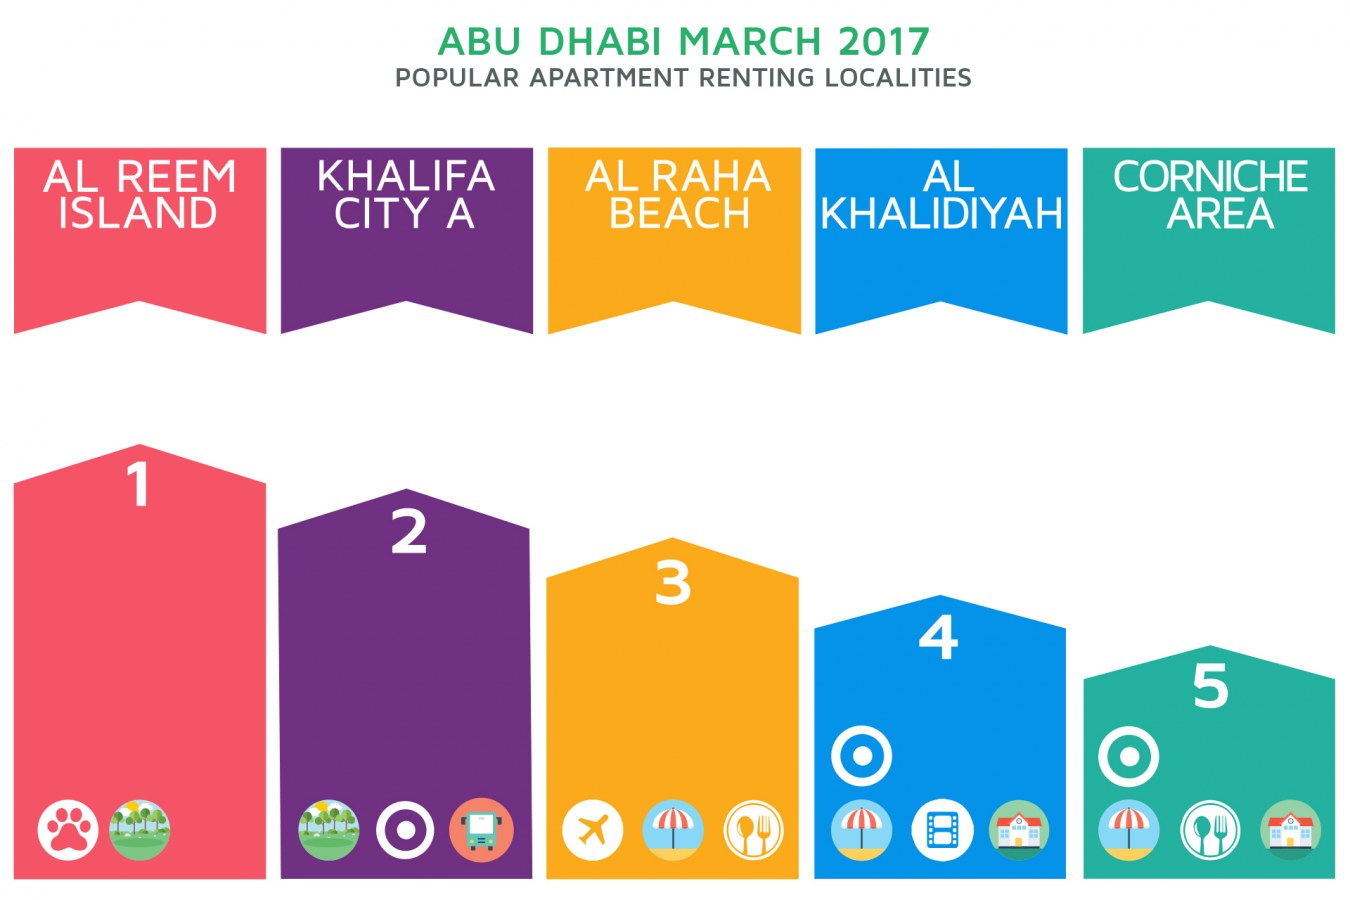 Infographic: Abu Dhabi's top apartment renting localities in March 2017